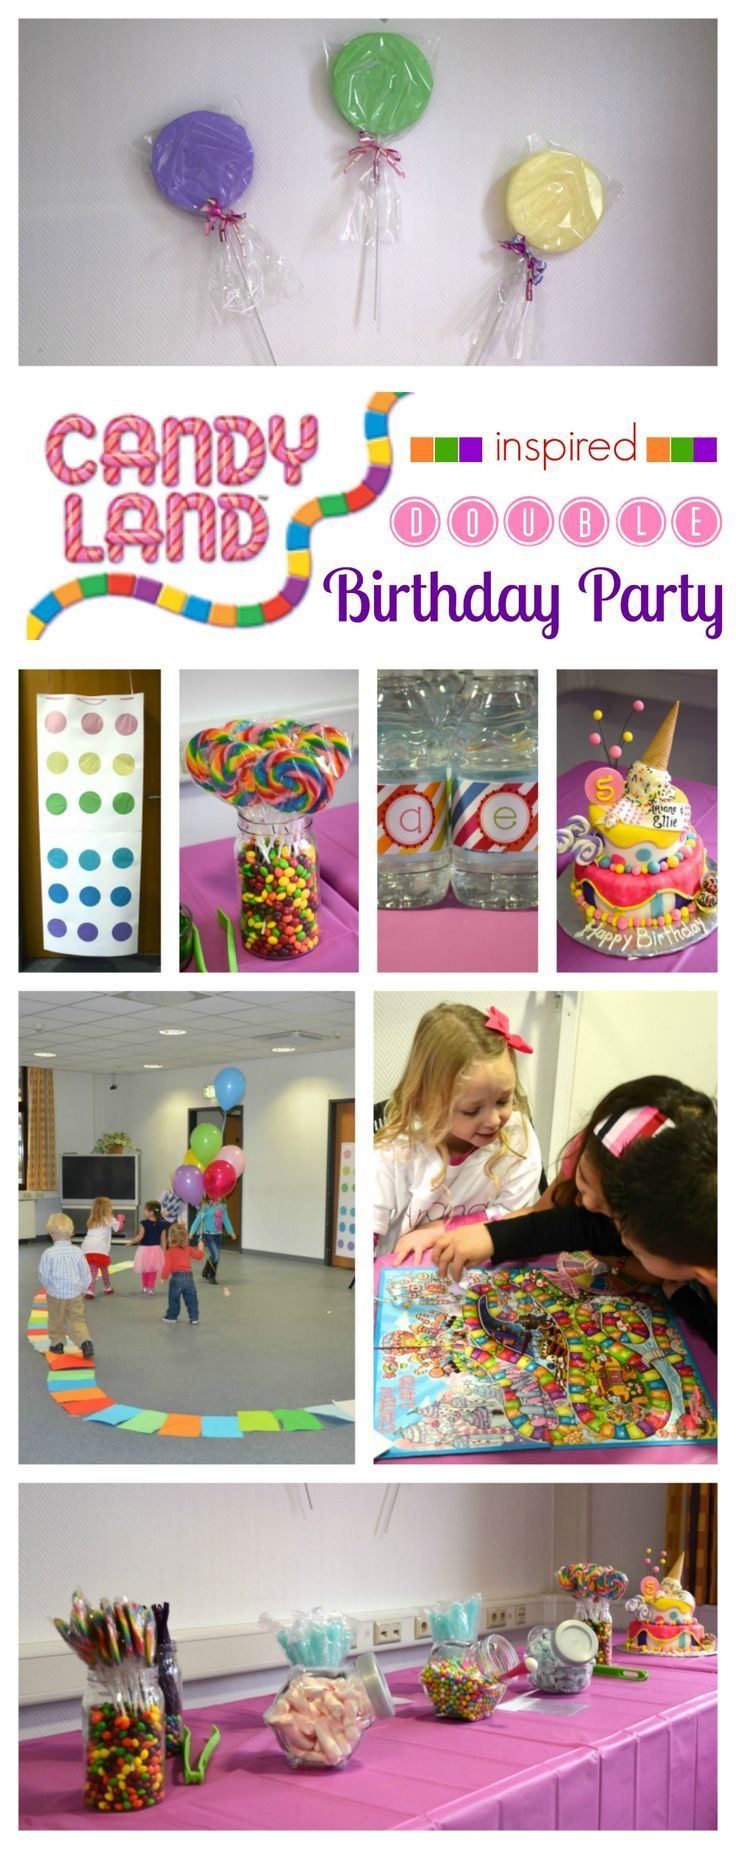 Candy Land Birthday Party: decor, food and game ideas: